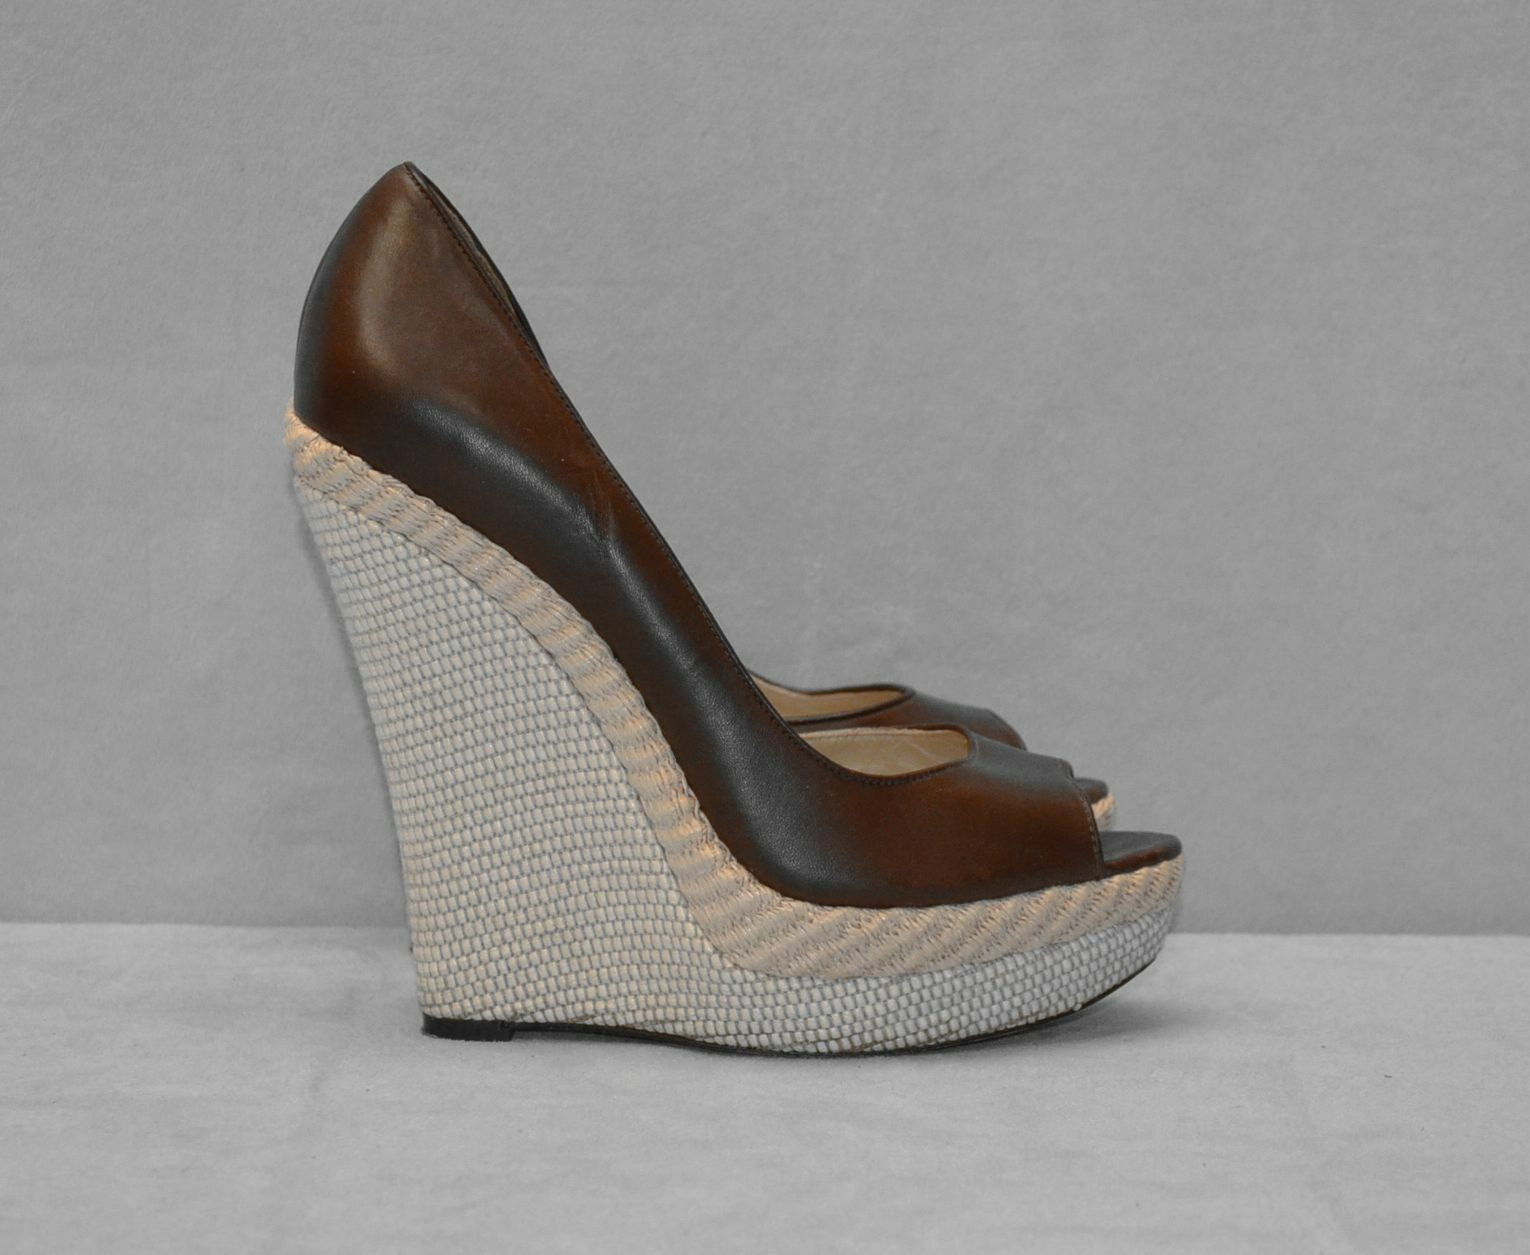 C0 Auth RACHEL Woven ZOE Brown Pelle Open Toe High Woven RACHEL Wedge Shoes Size 8 M 65e250